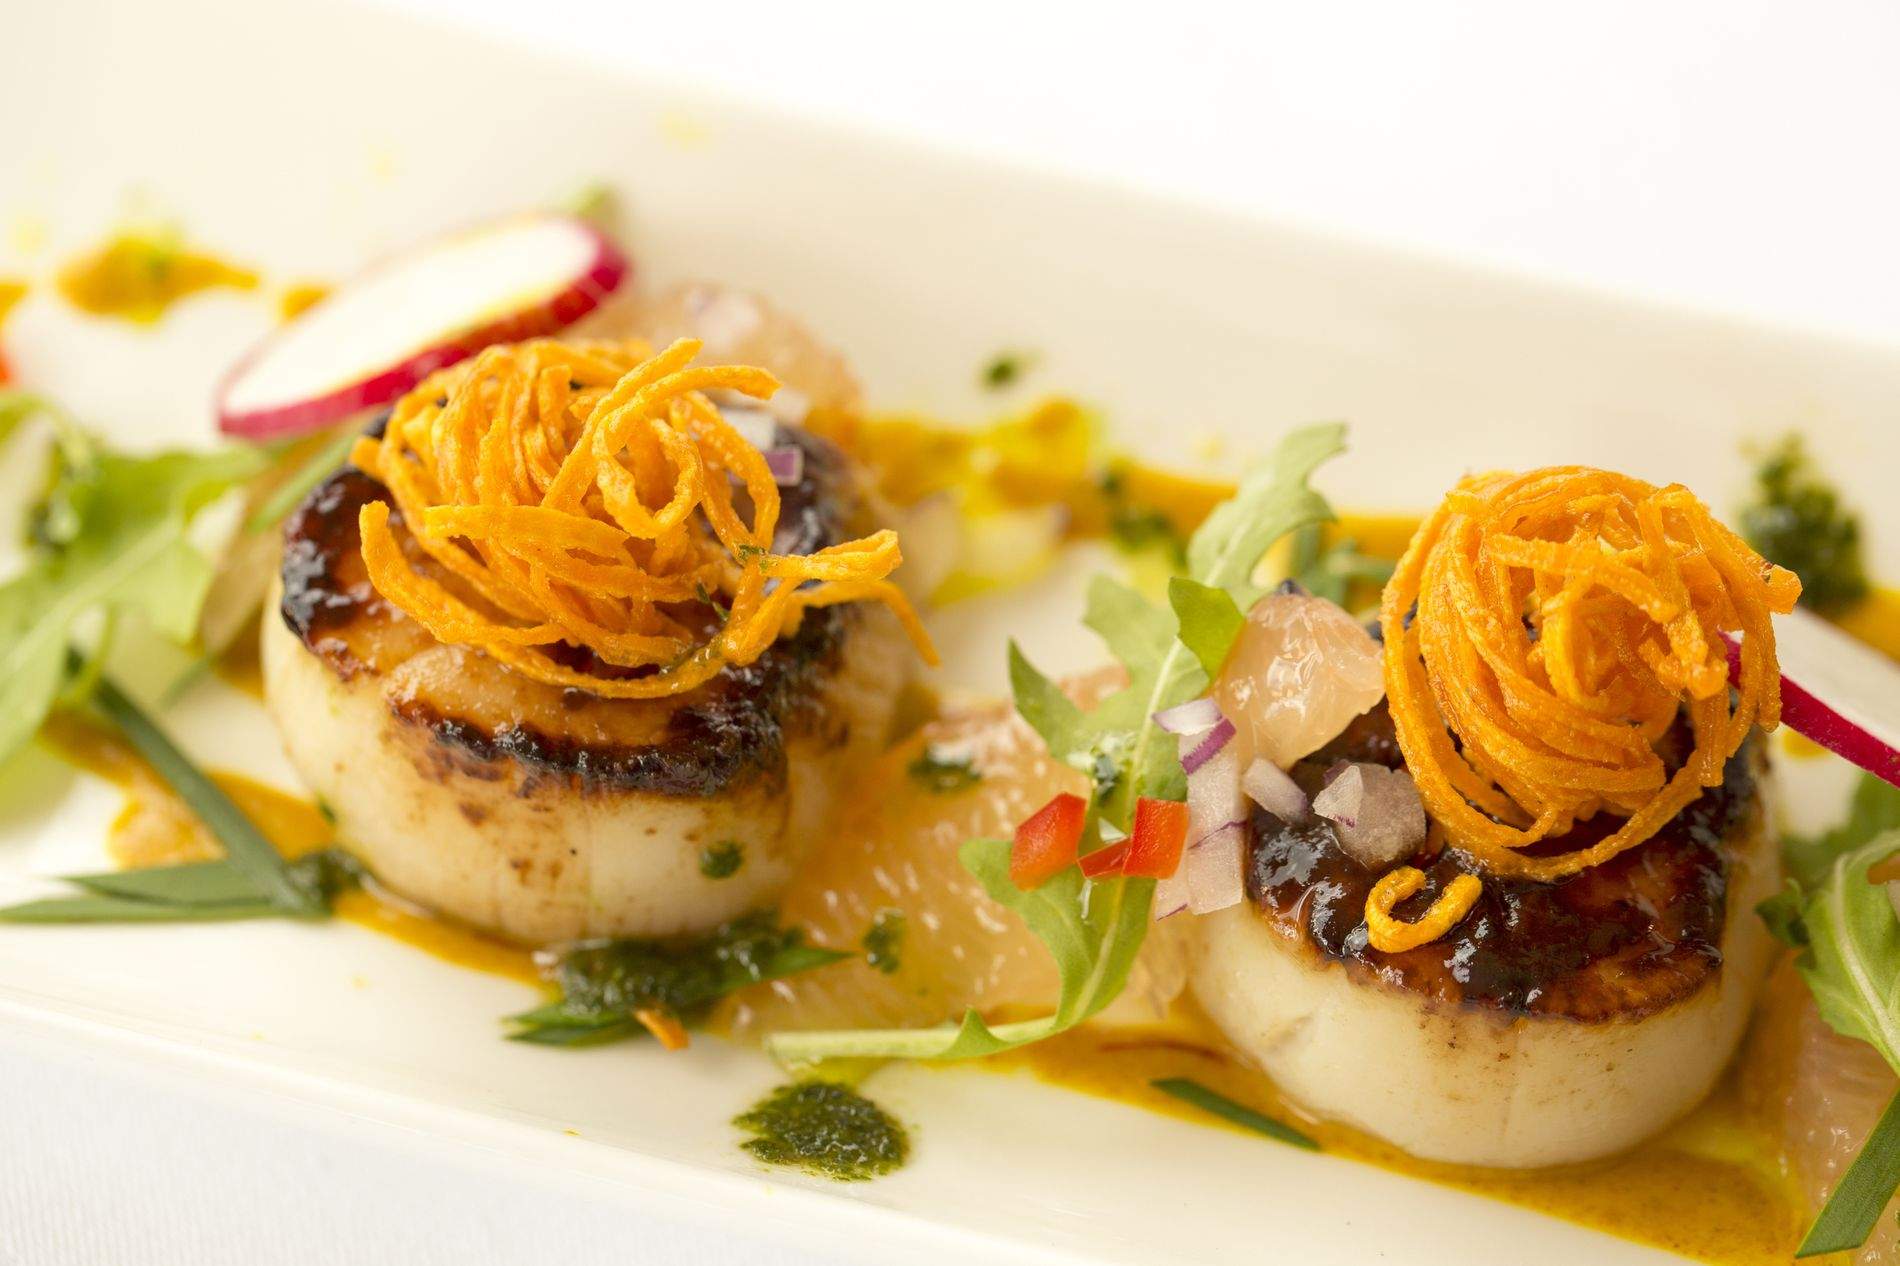 Scallop entrée at The Terrace